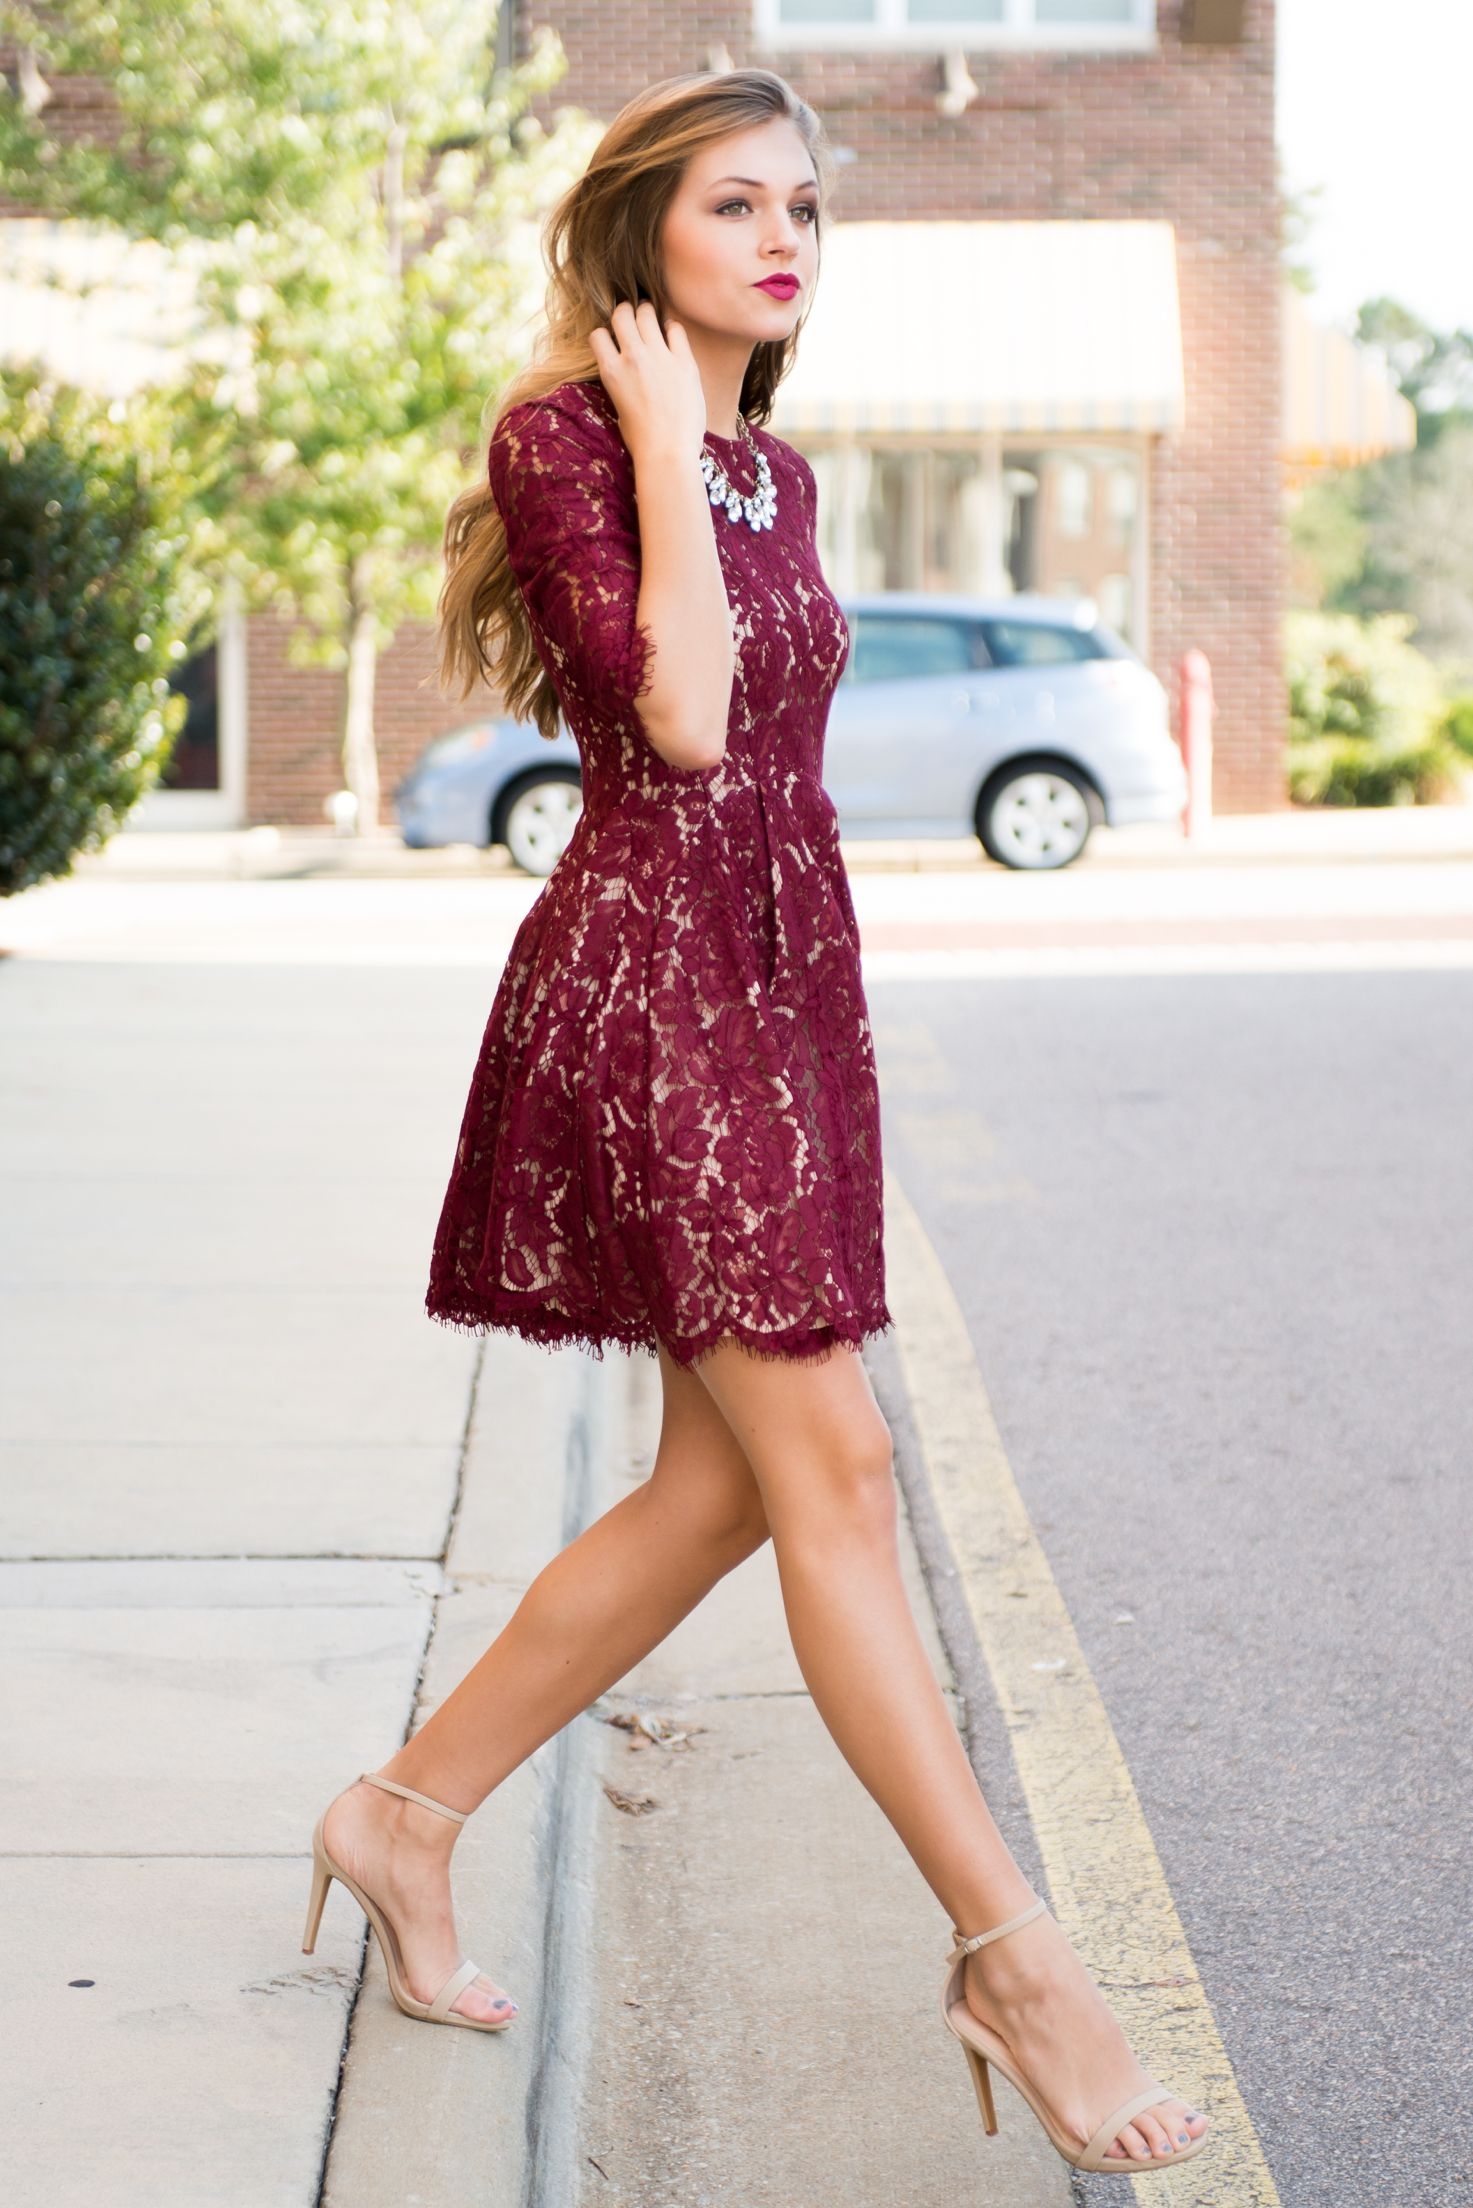 Maroon and white lace dress